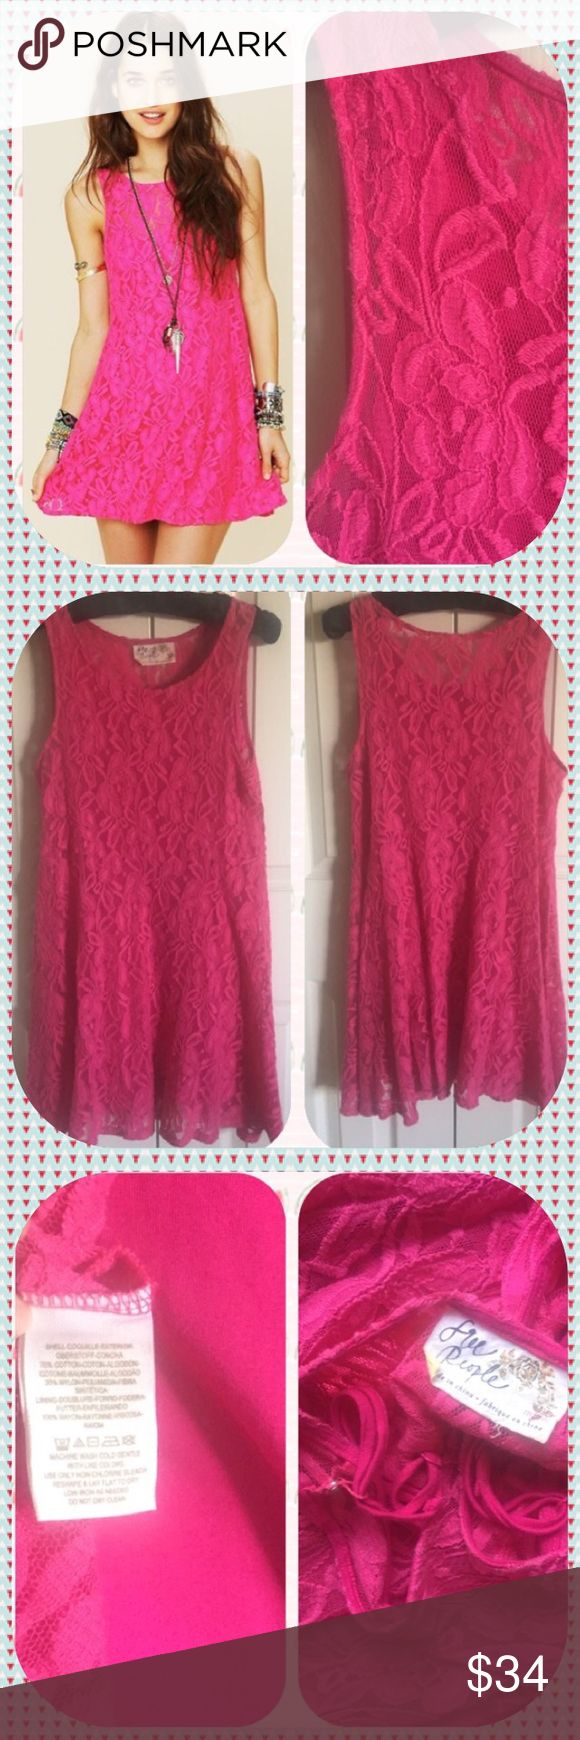 """💖 Free People """"Pretty in Pink"""" Lace Dress💖 💝 Wrap yourself up in a fur or puffer and then go out country line dancing in your cowgirl boots! Yee haw! EUC!! Lace fully lined with cotton and washable! Free People Dresses"""